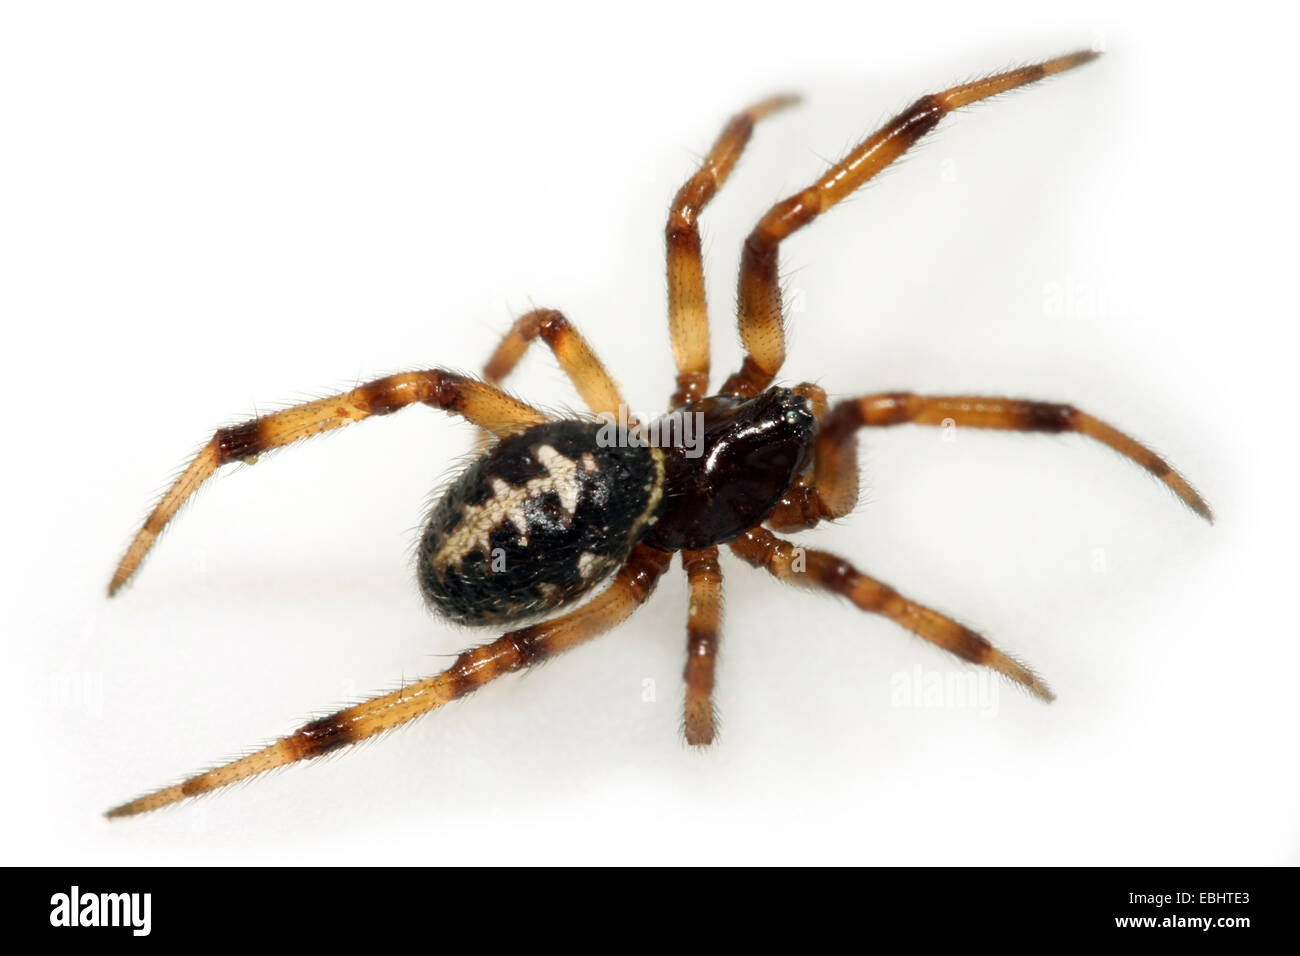 A female False Widow spider (Steatoda paykulliana) on white background. Part of the family Theridiidae - Cobweb - Stock Image